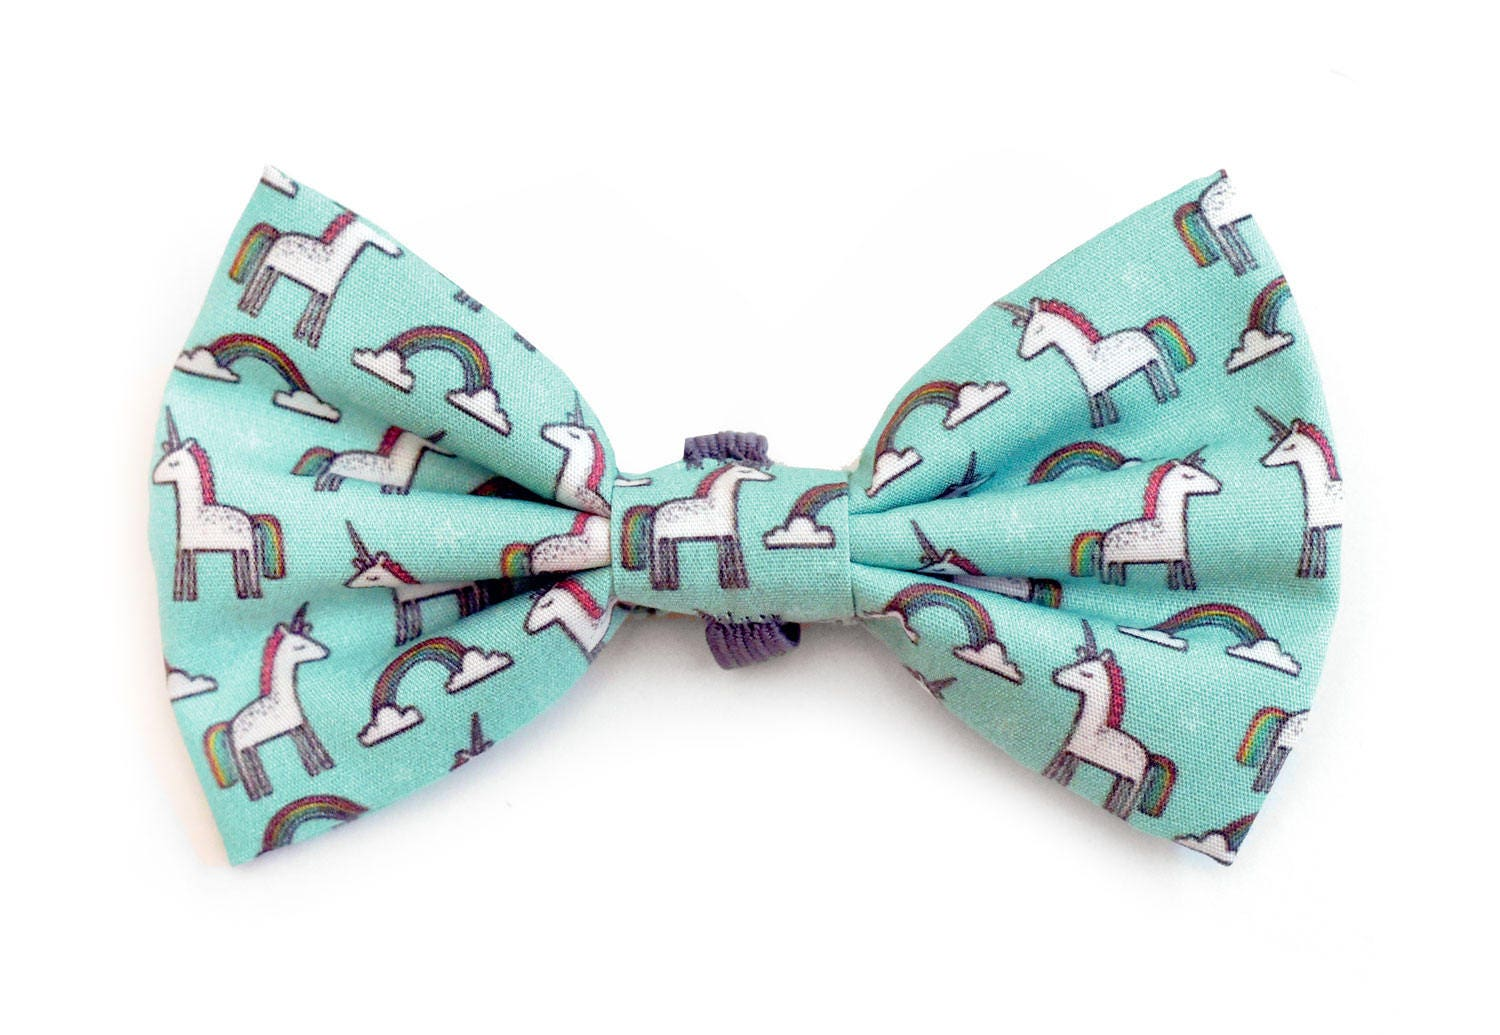 The Starr Bow Tie Dog Bowtie Made in Brooklyn Bowtied